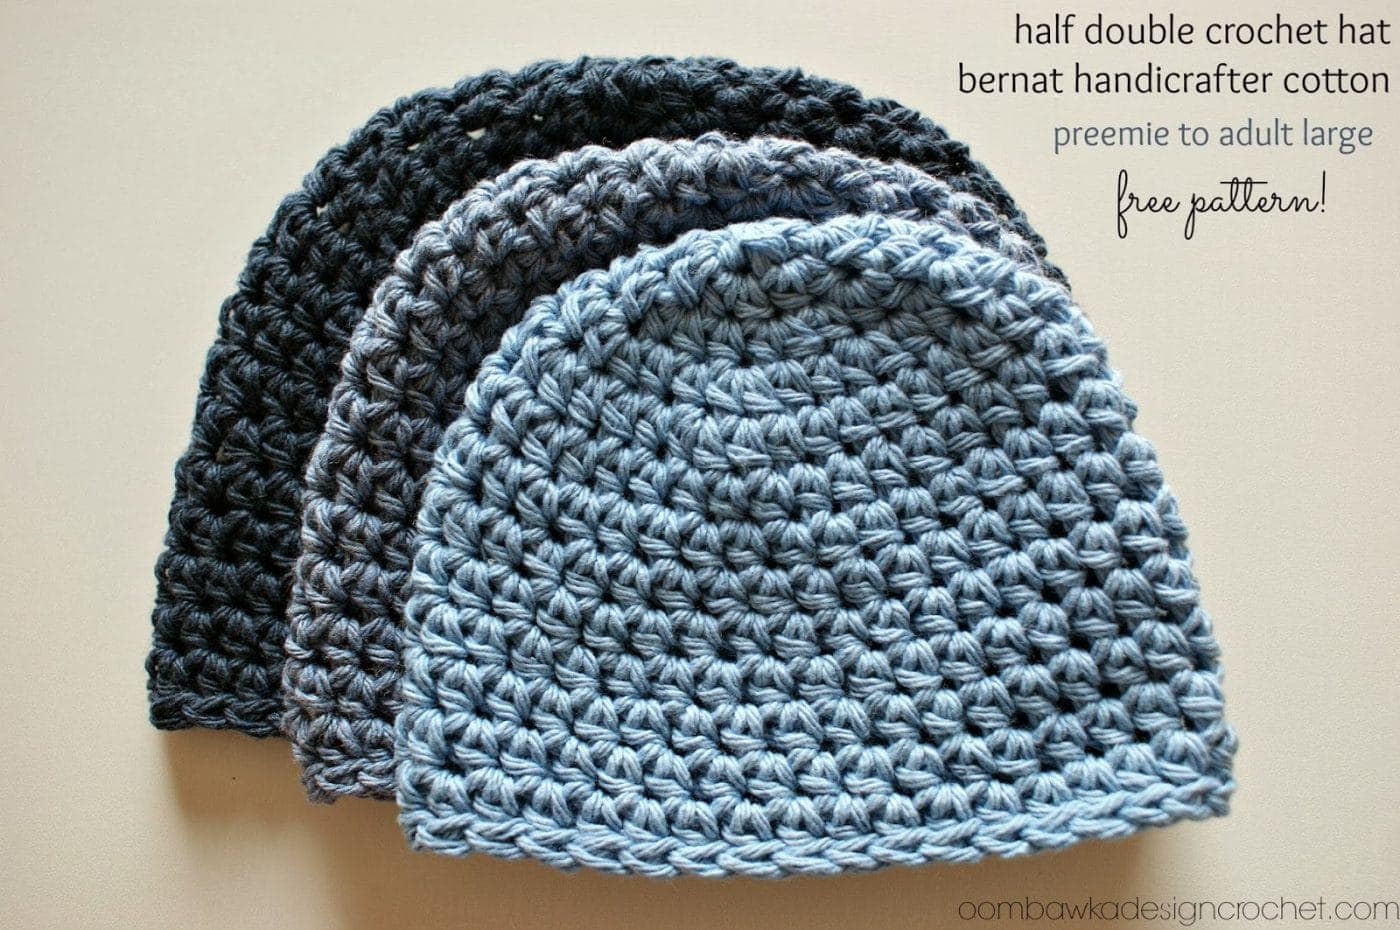 Half Double Crochet Cotton Hat Pattern Oombawka Design